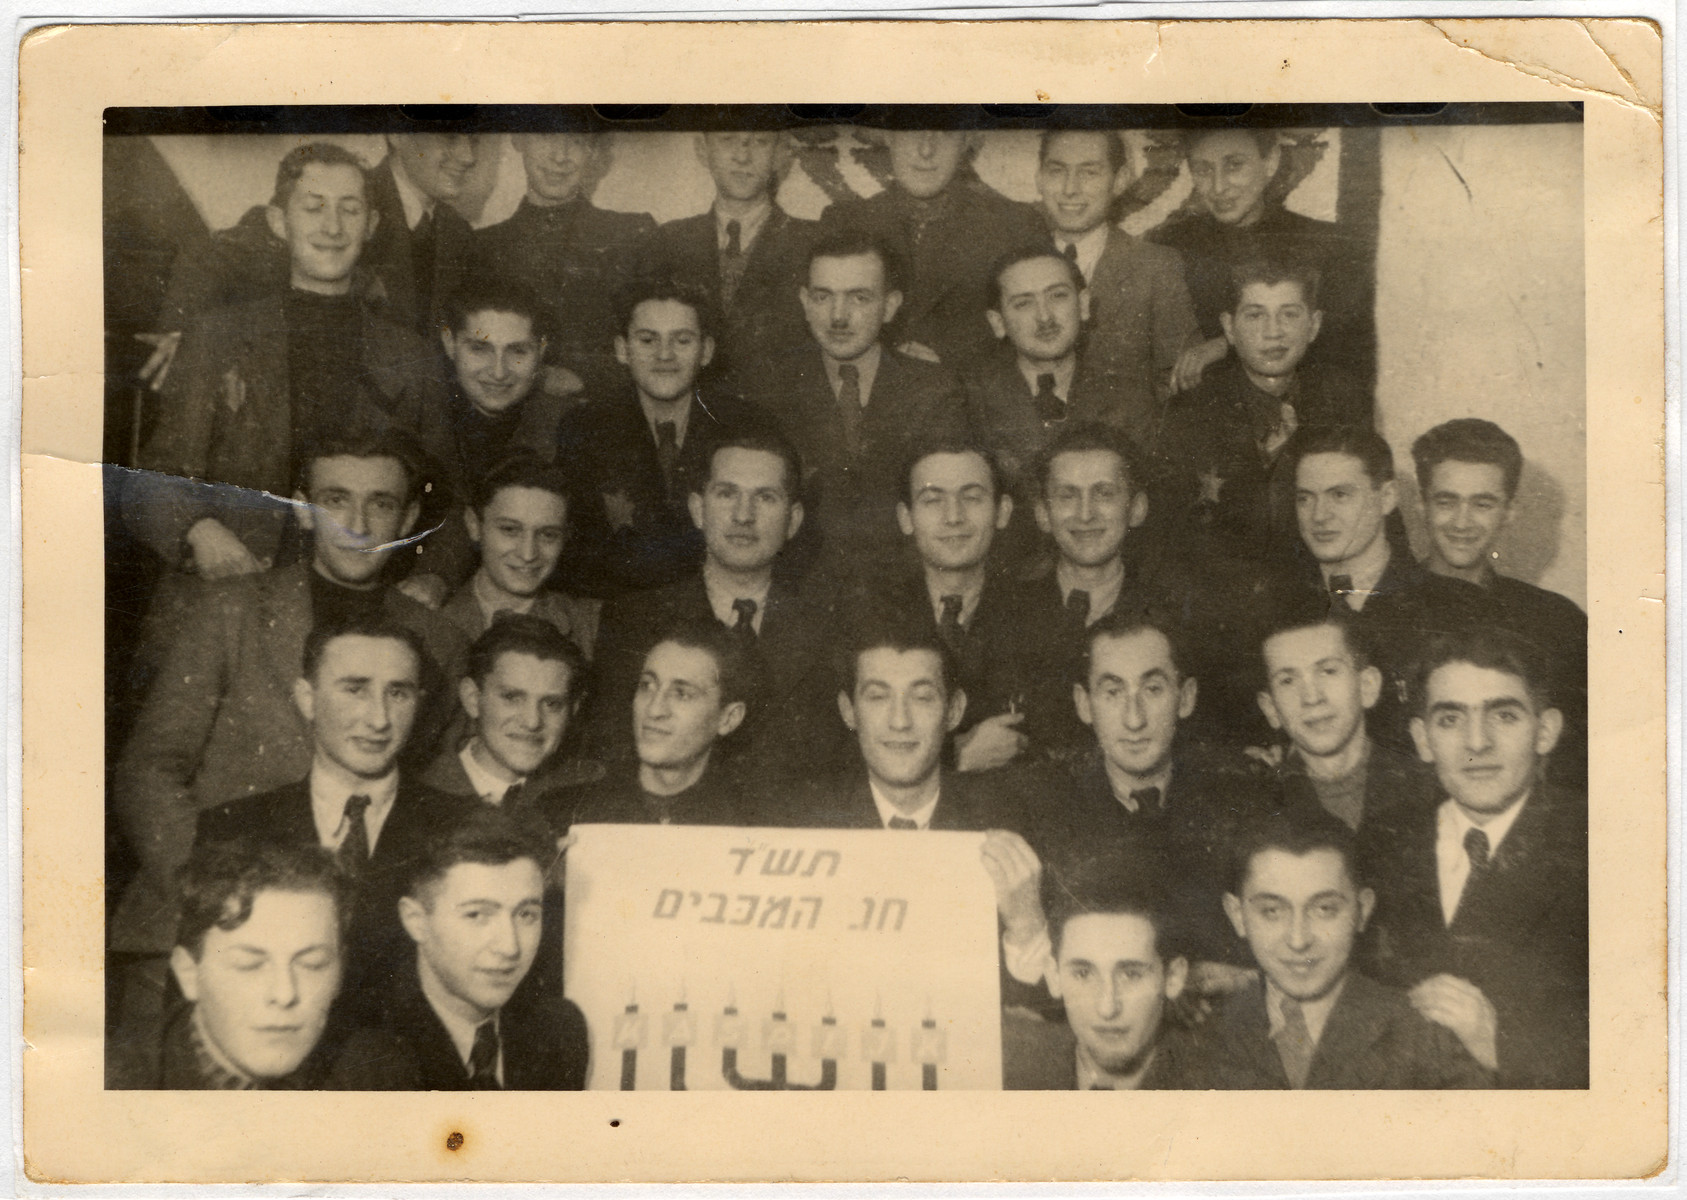 "Members of Hanoar Hatzioni celebrate Chanukka in the Lodz ghetto.    The young men hold a sign with a picture of a menorah that reads,""1943/Festival of the Maccabees.""  The Polish letters on the branches of the menorah spell out the word ""KASPIJK,"" possibly the name of the chapter of the organization.     Standing left to right, first row: Zvi Lautenberg, Przygorski (later Irving Gorsky), Marek Rus and Julian Waks.  Second row: Libicki, Kuba Lubinski, Rozenes, Wiktor Sztajn, Aron Jakubson and Abraham Klugman.  Third row: Josef Waserciser, Alek Szapira, unknown, unknown, unknown, Chaim Rozenowicz and Arie Princ.  Fourth row, Lolek Lubinski, Kliger, Kohen, Adolek Kohen, and unknown.  Top row. Henryk Bergman (far left), others unknown."